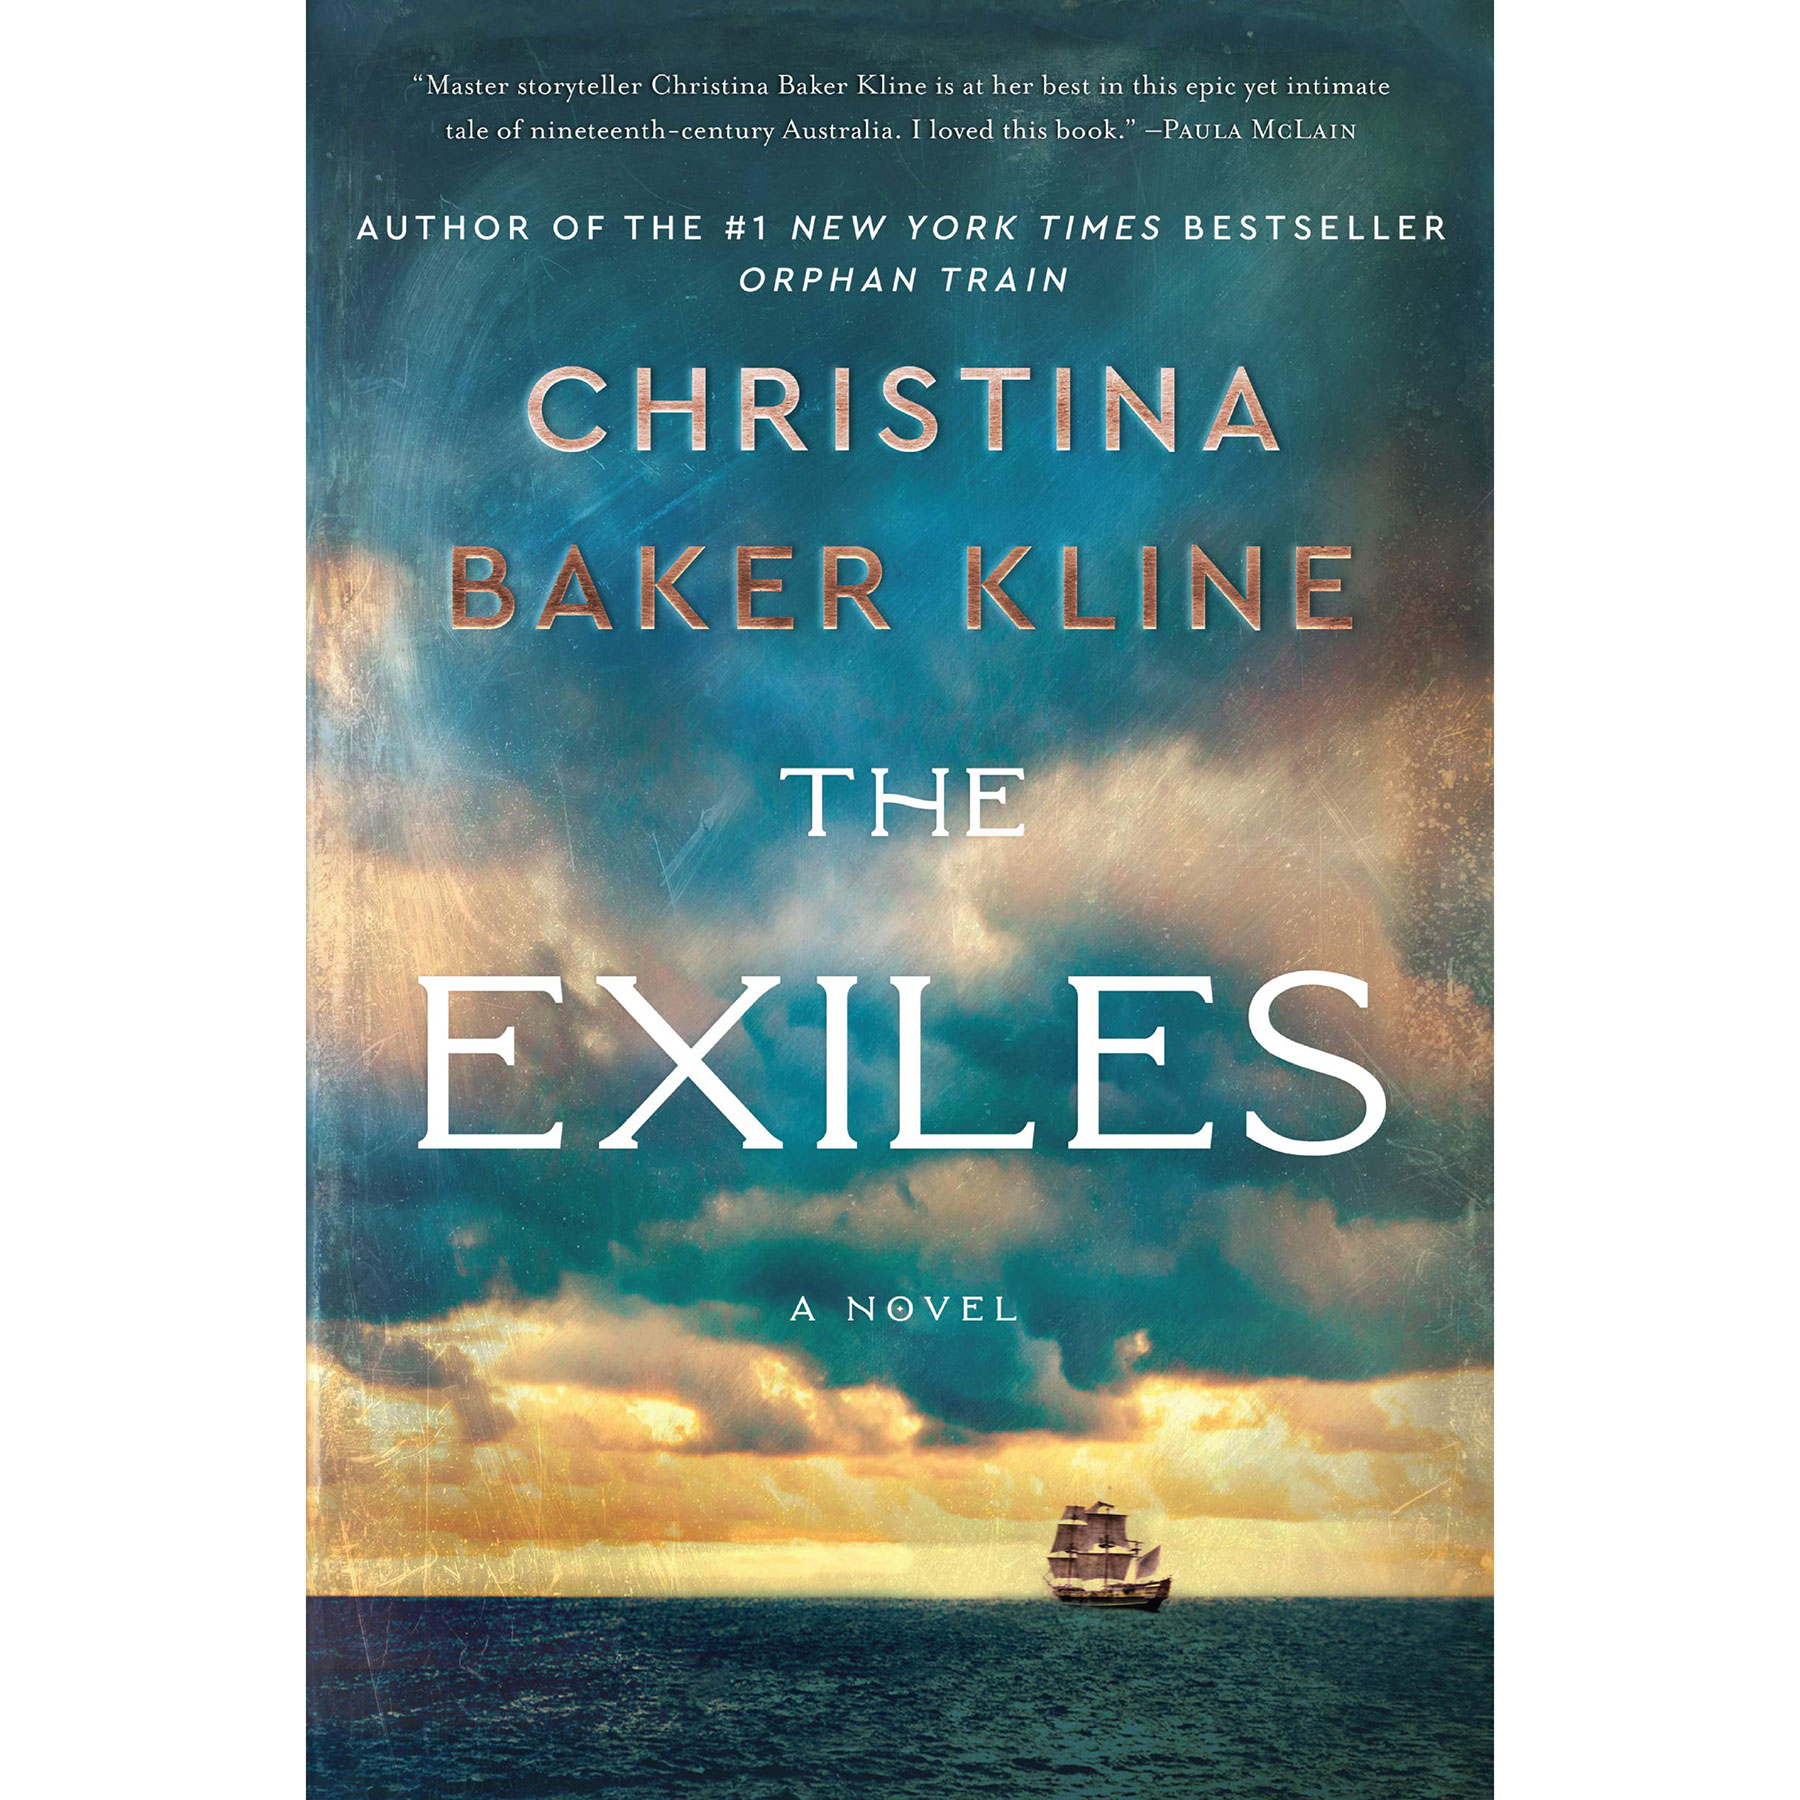 Best Books 2020: The Exiles